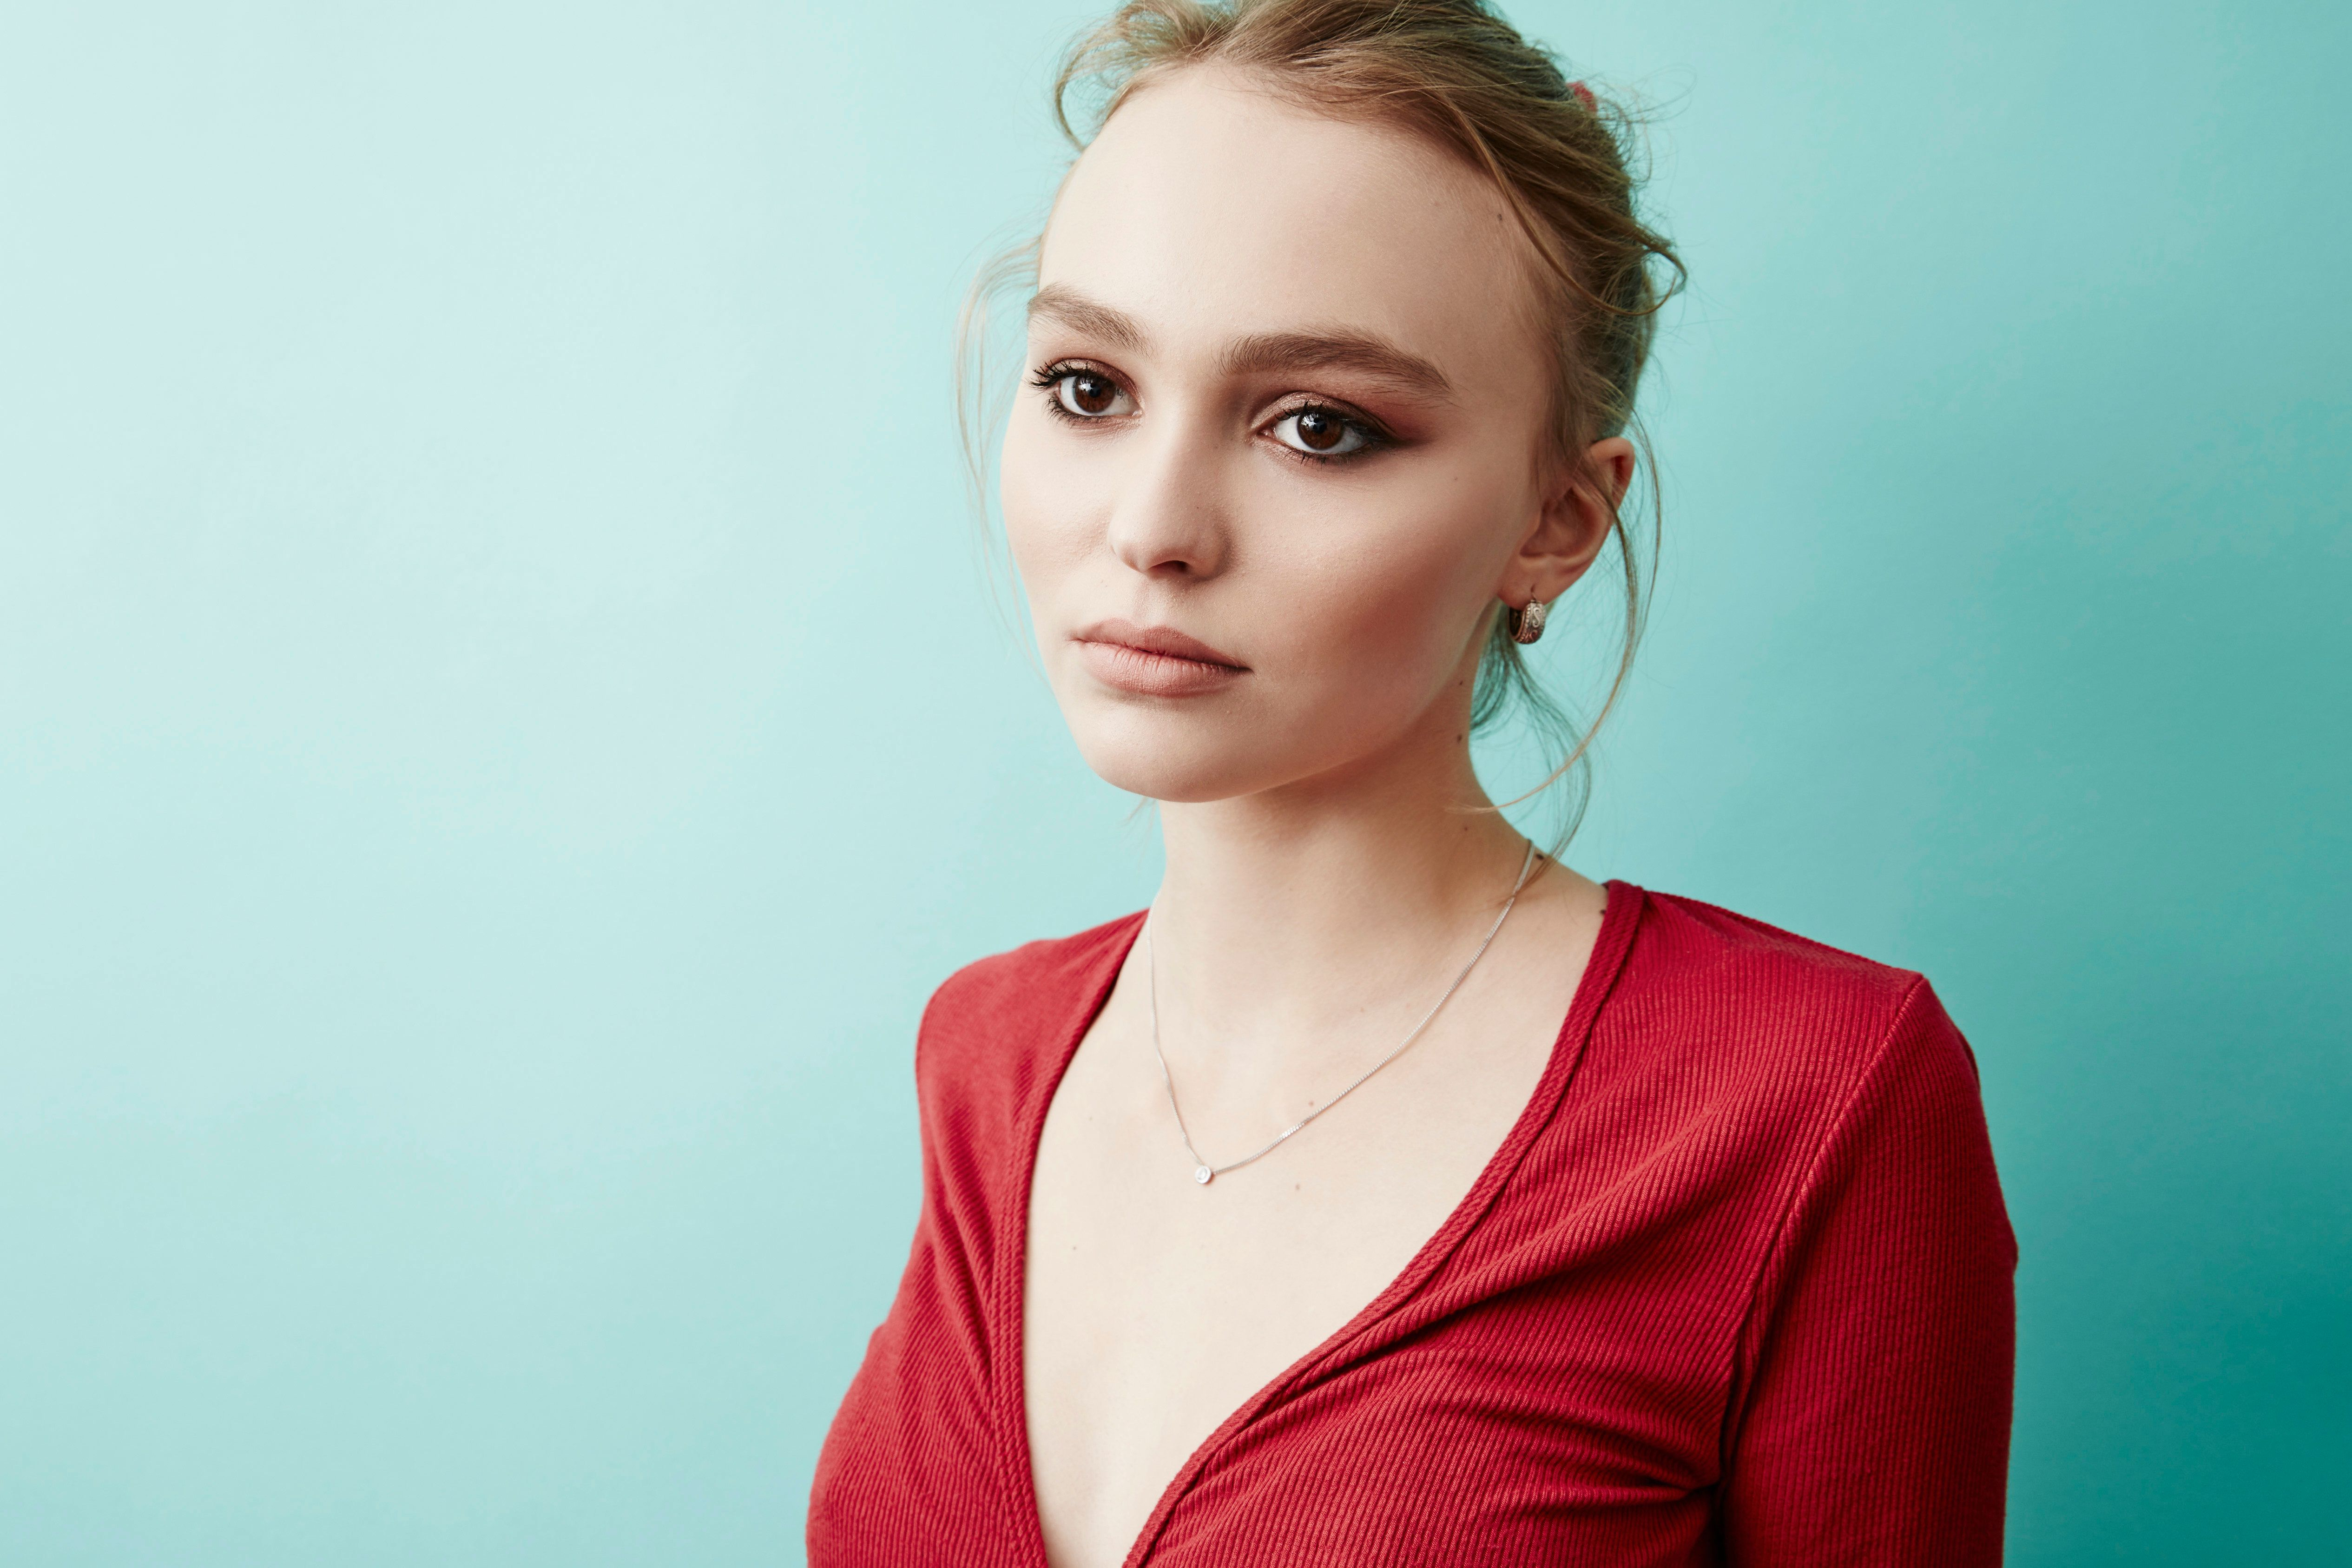 Lily-Rose Melody Depp of 'Yoga Hosers' poses for a portrait at the 2016 Sundance Film Festival Getty Images Portrait Studio Hosted By Eddie Bauer At Village At The Lift on January 24, 2016 in Park City, Utah